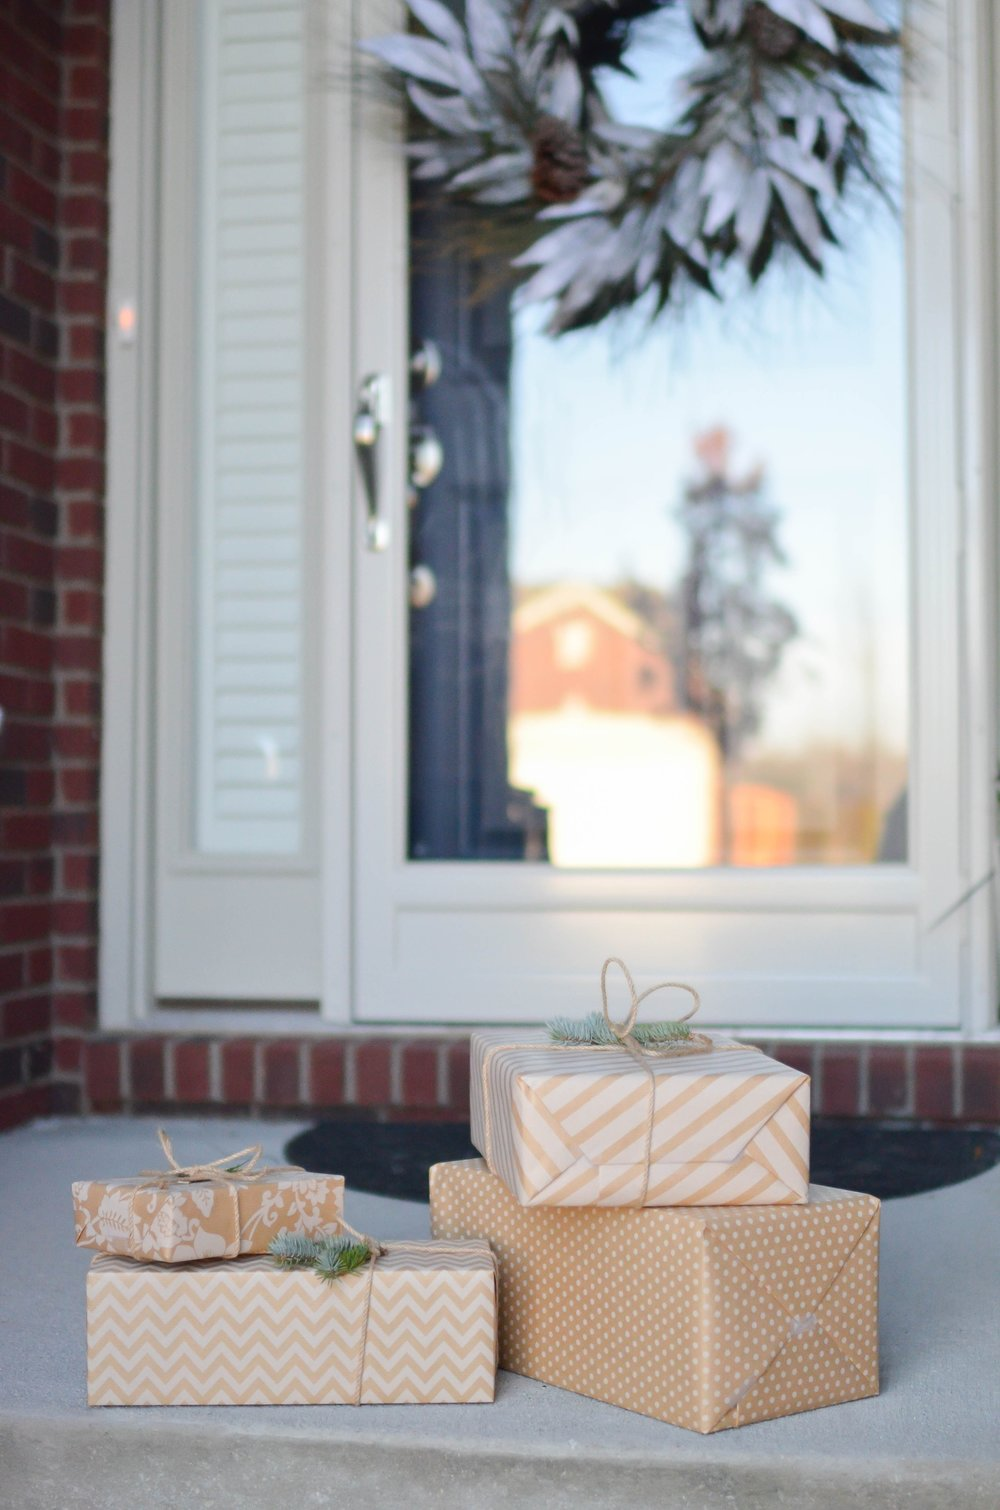 packages left on a doorstep in front of a home